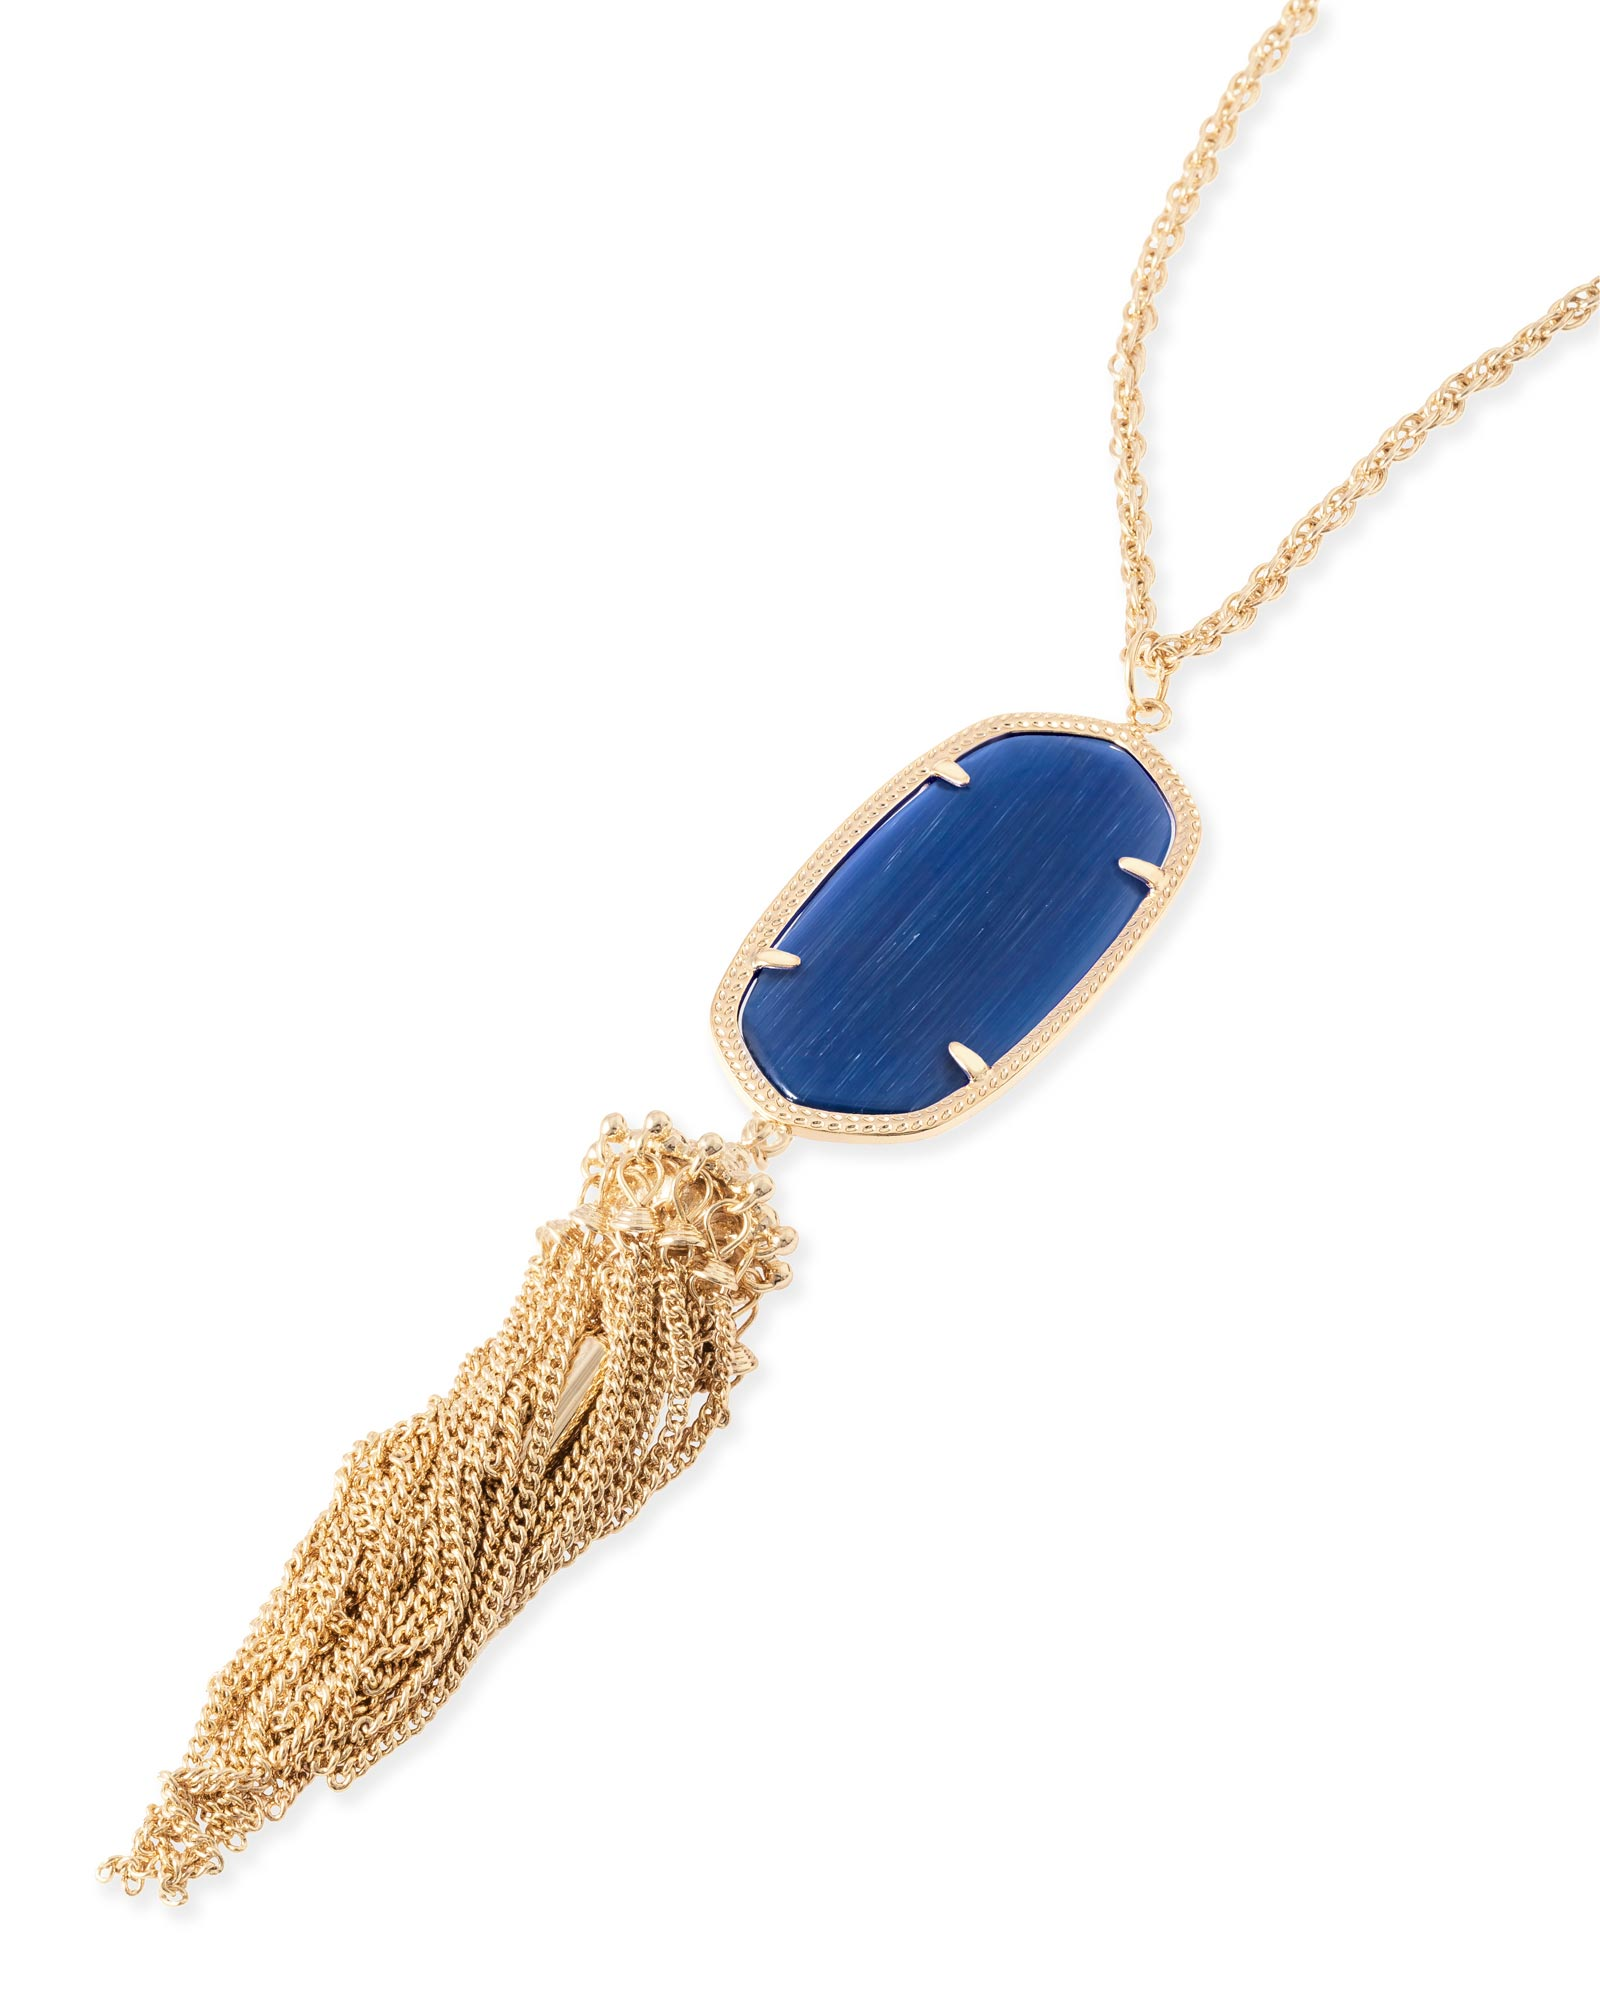 Rayne Necklace in Navy Cat's Eye